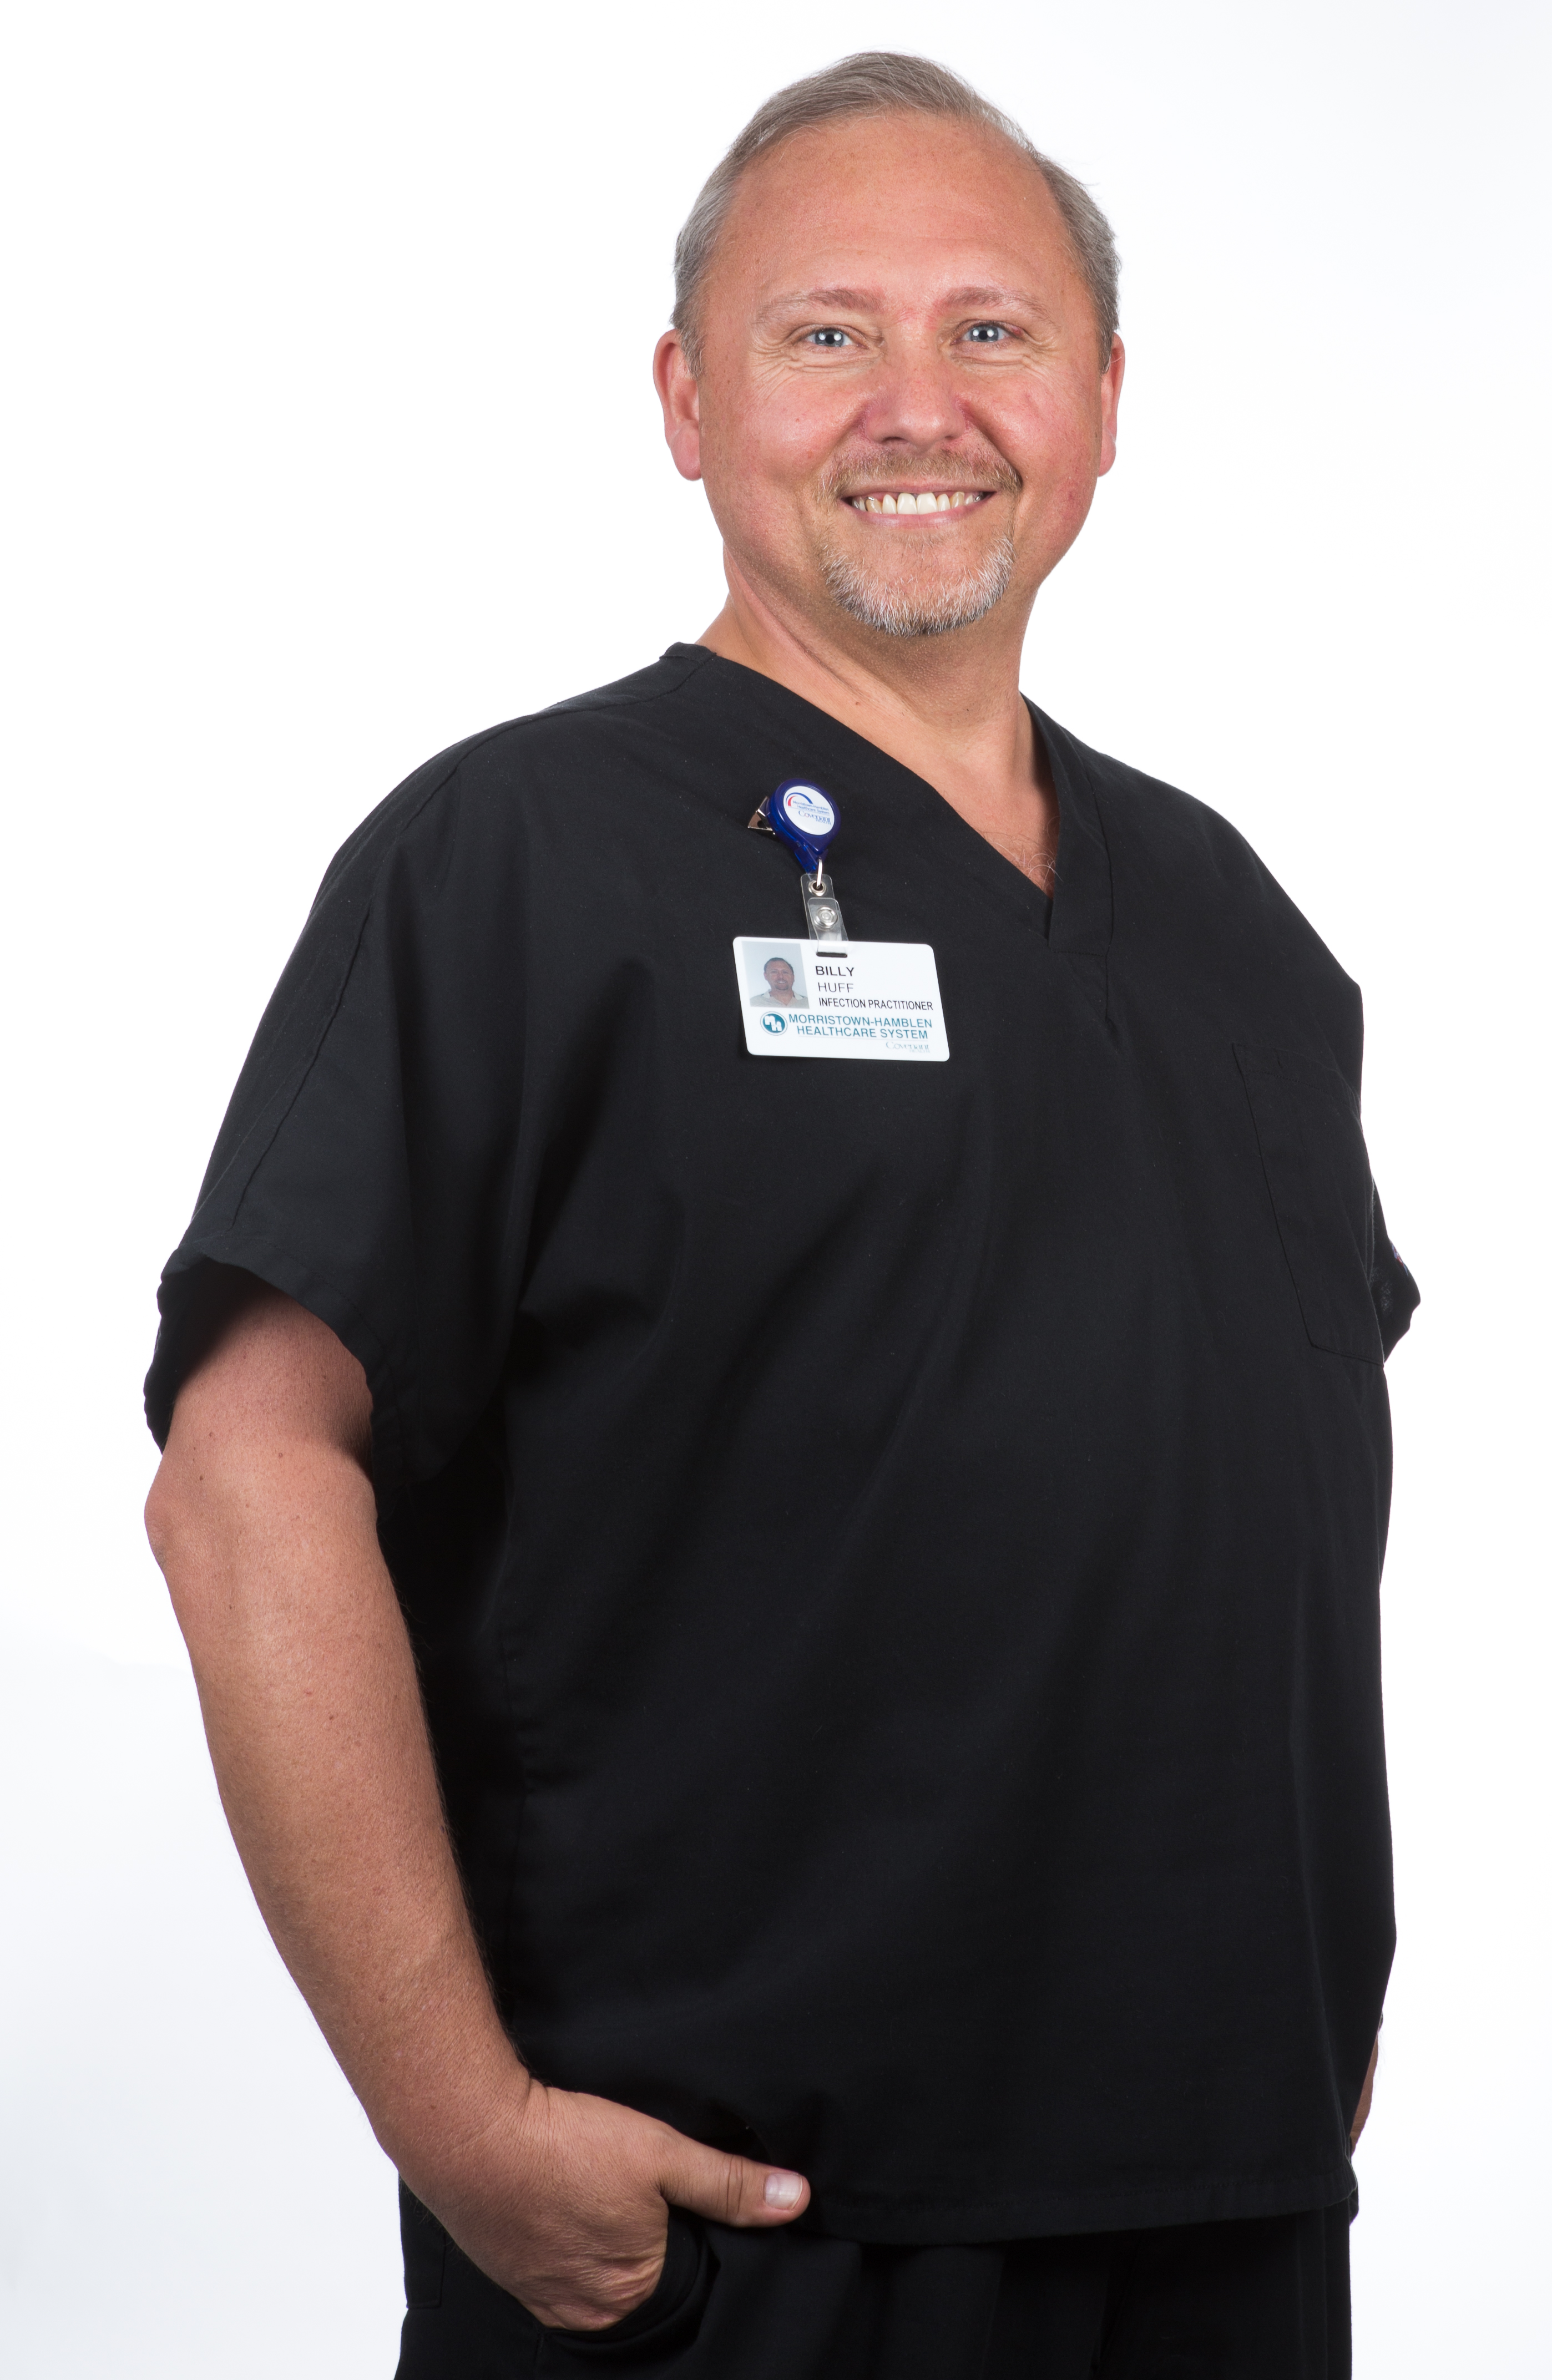 It's Meet the Staff Monday and today we are getting to know Billy Huff, BSN, Infection Practitioner